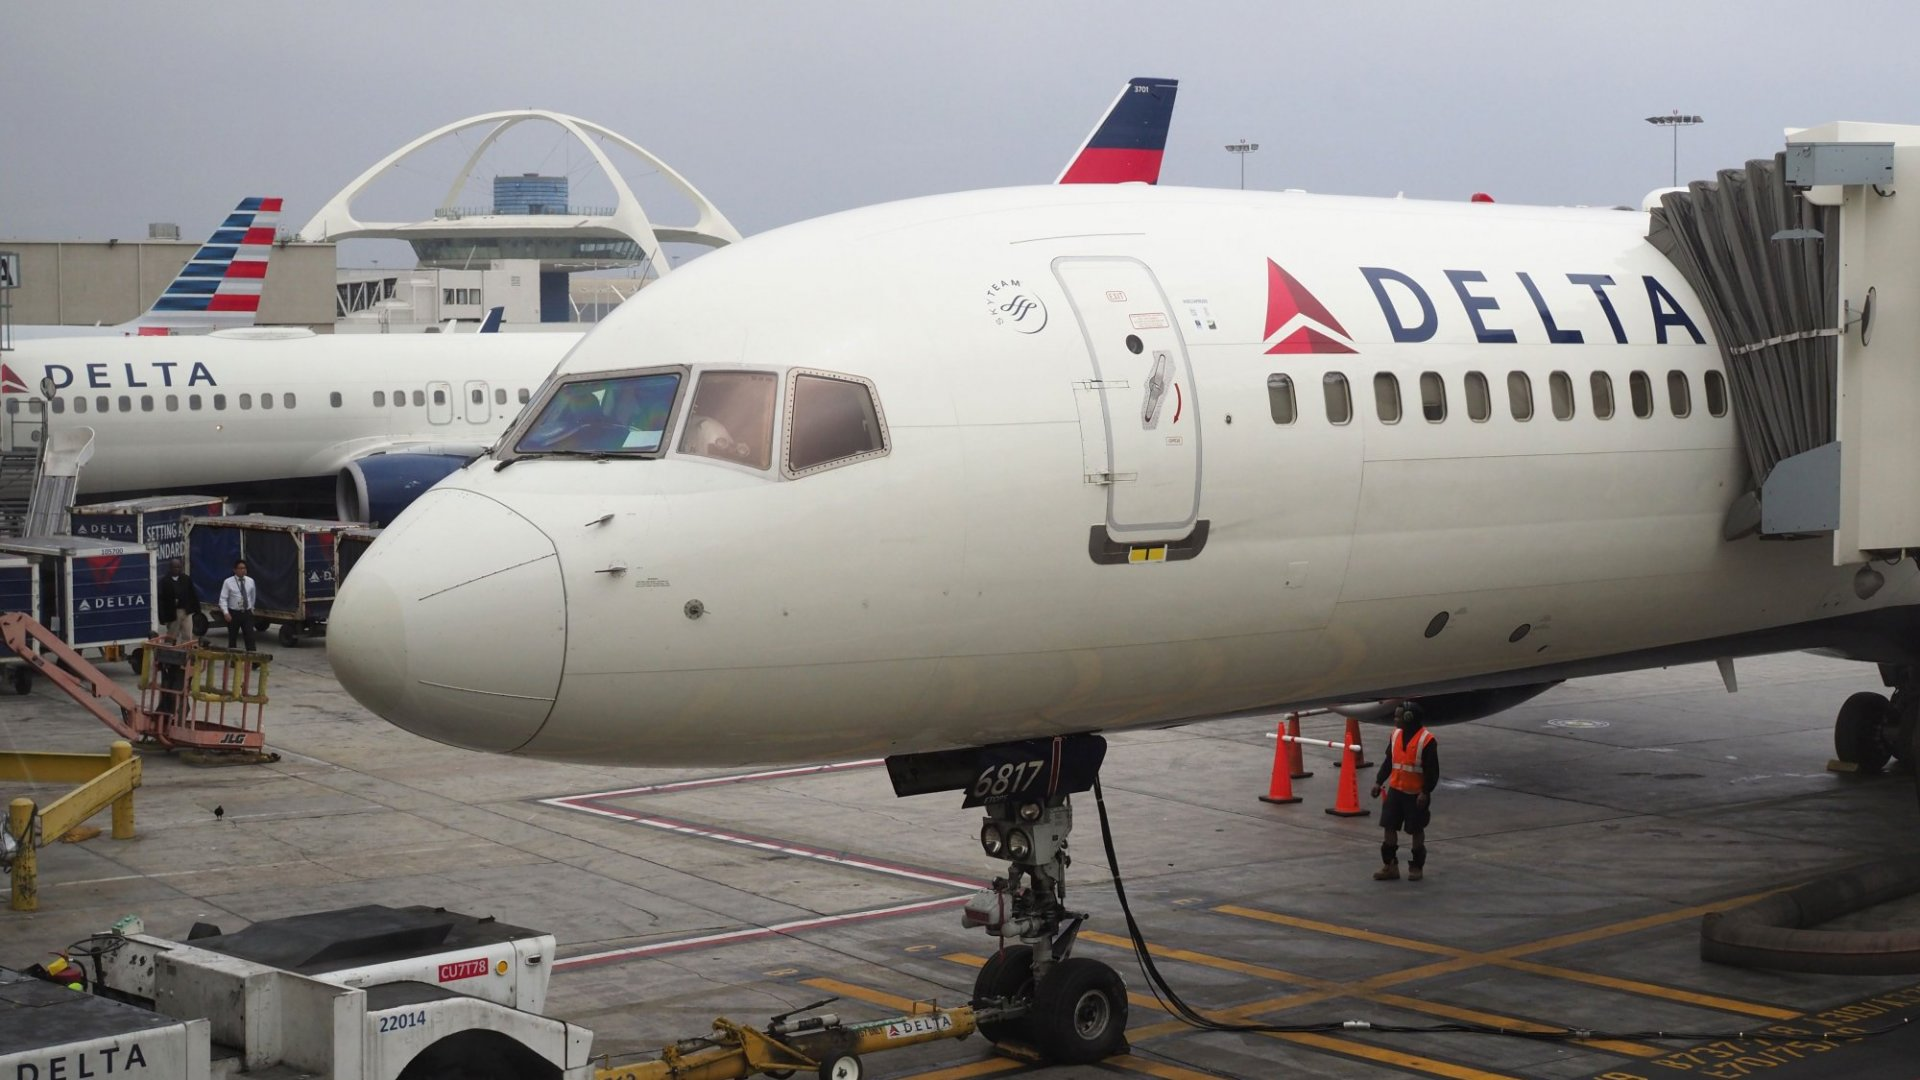 Delta Air Lines Just Made a Truly Stunning Announcement About Economy Travel. (But Will Other Airlines Just Copy Them?)